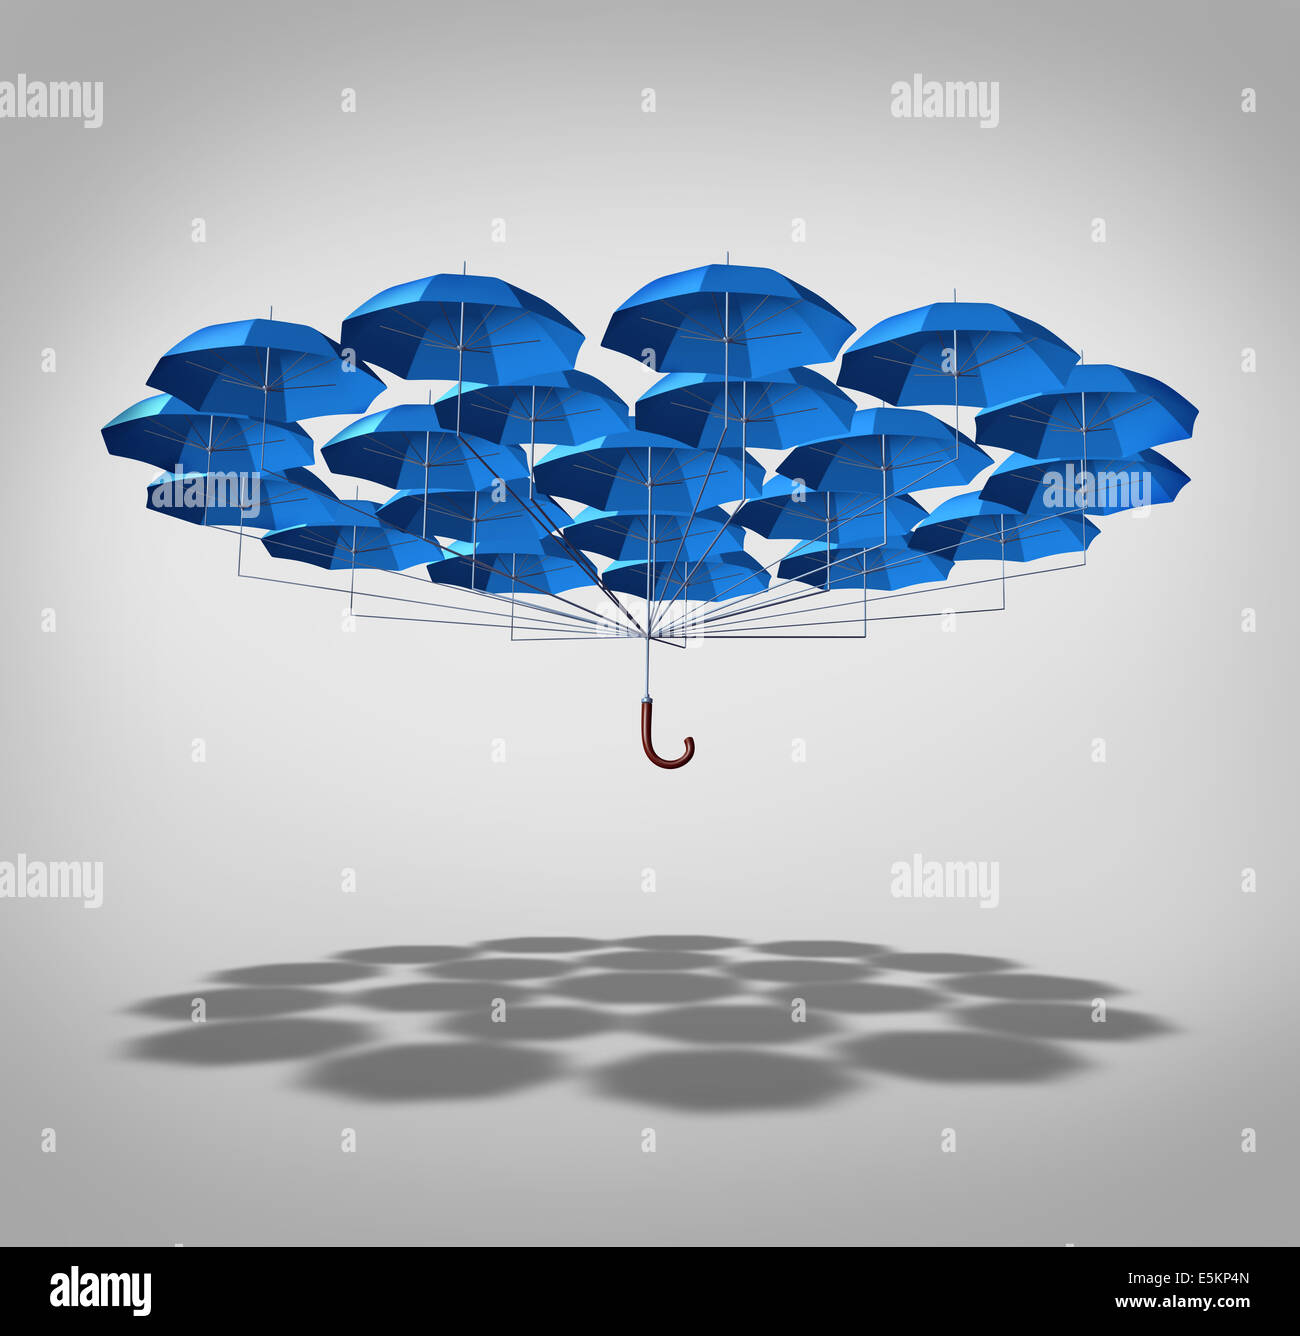 Extra security concept as a wide group of blue umbrellas connected together as one umbrella as a symbol of supplemental - Stock Image